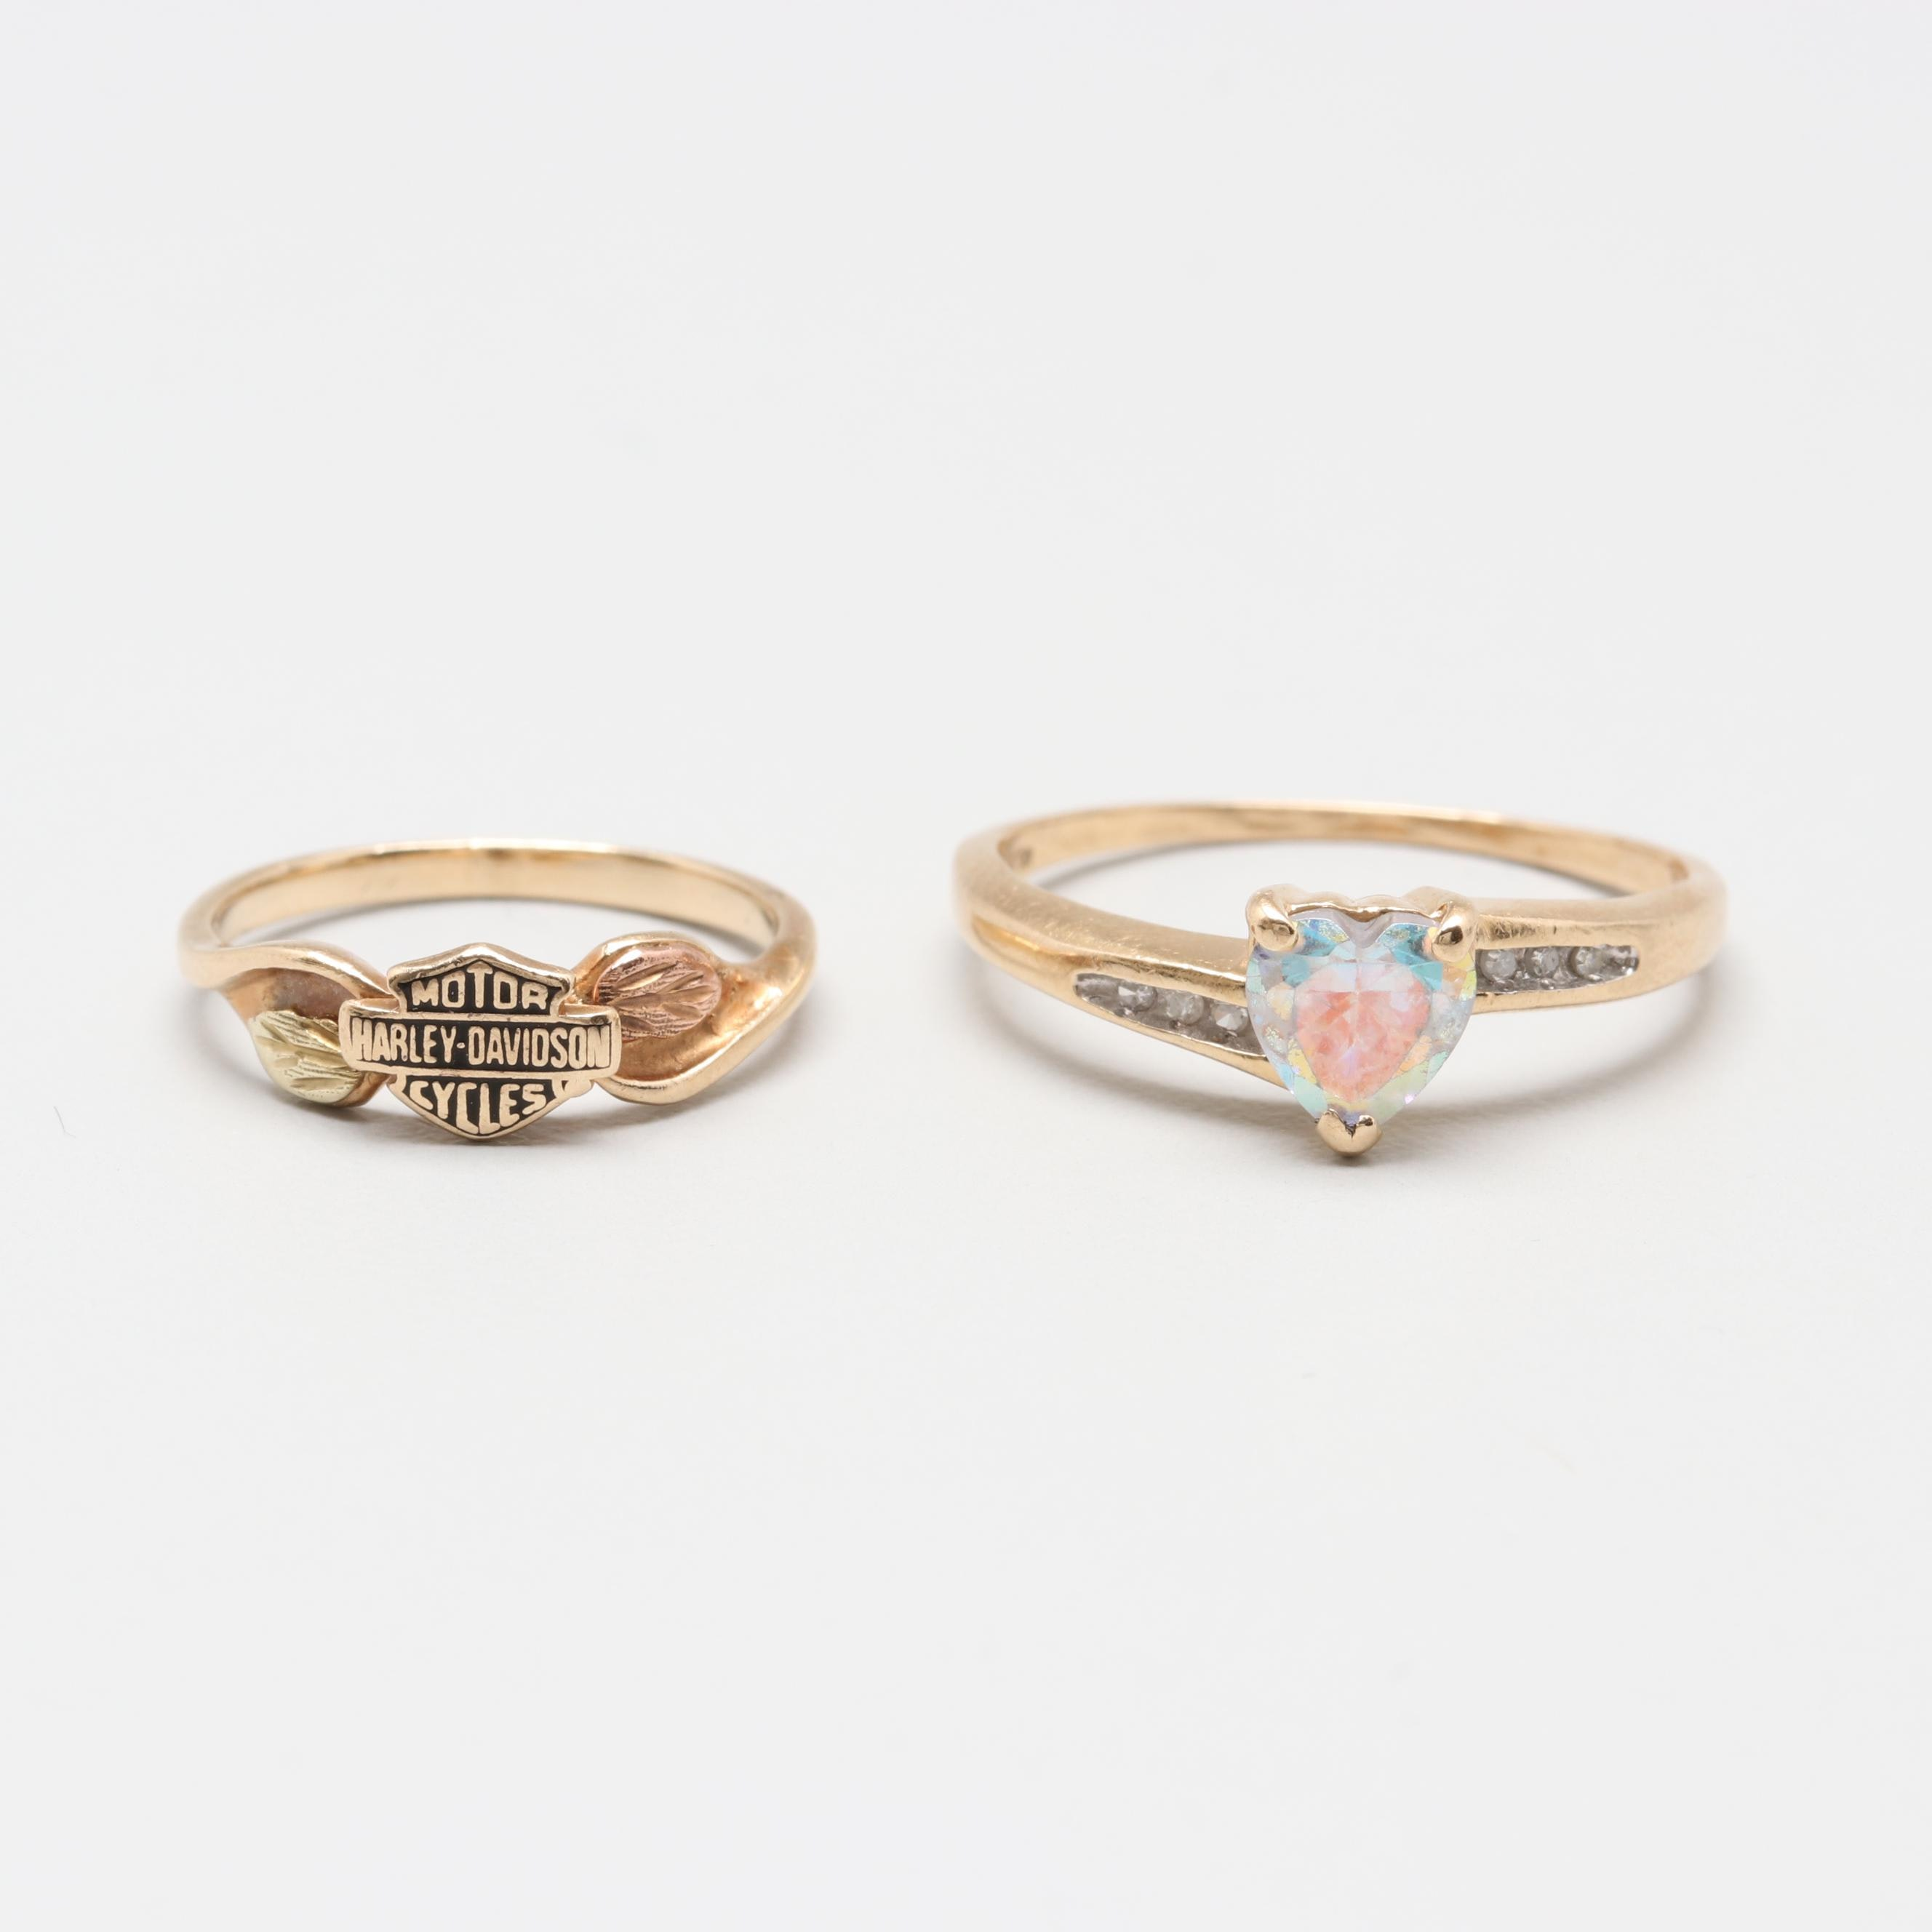 10K and 14K Yellow Gold Glass and Diamond Rings With Harley Davidson